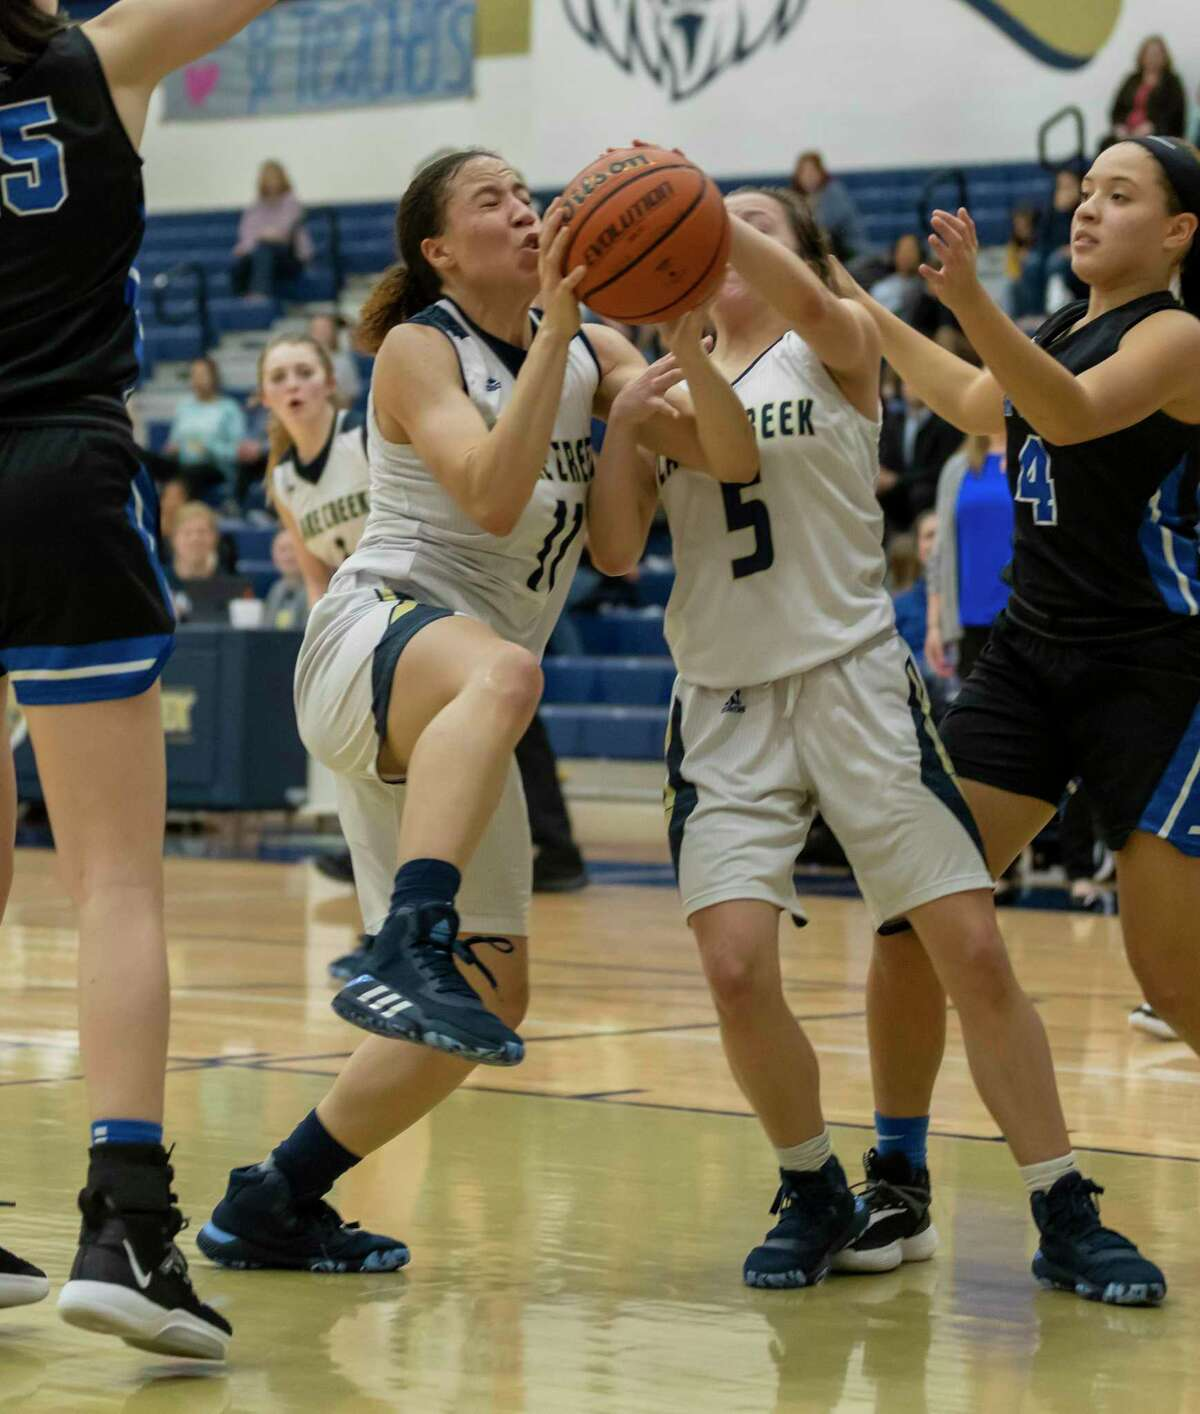 Lake Creek forward Jasmine Payne (11), Lake Creek guard Kennedy Oliver (5) and New Caney guard Jasmine Toney (4) fight for a rebound during the first half in a District 20-5A game at Lake Creek high school, Tuesday, Jan. 28, 2020.